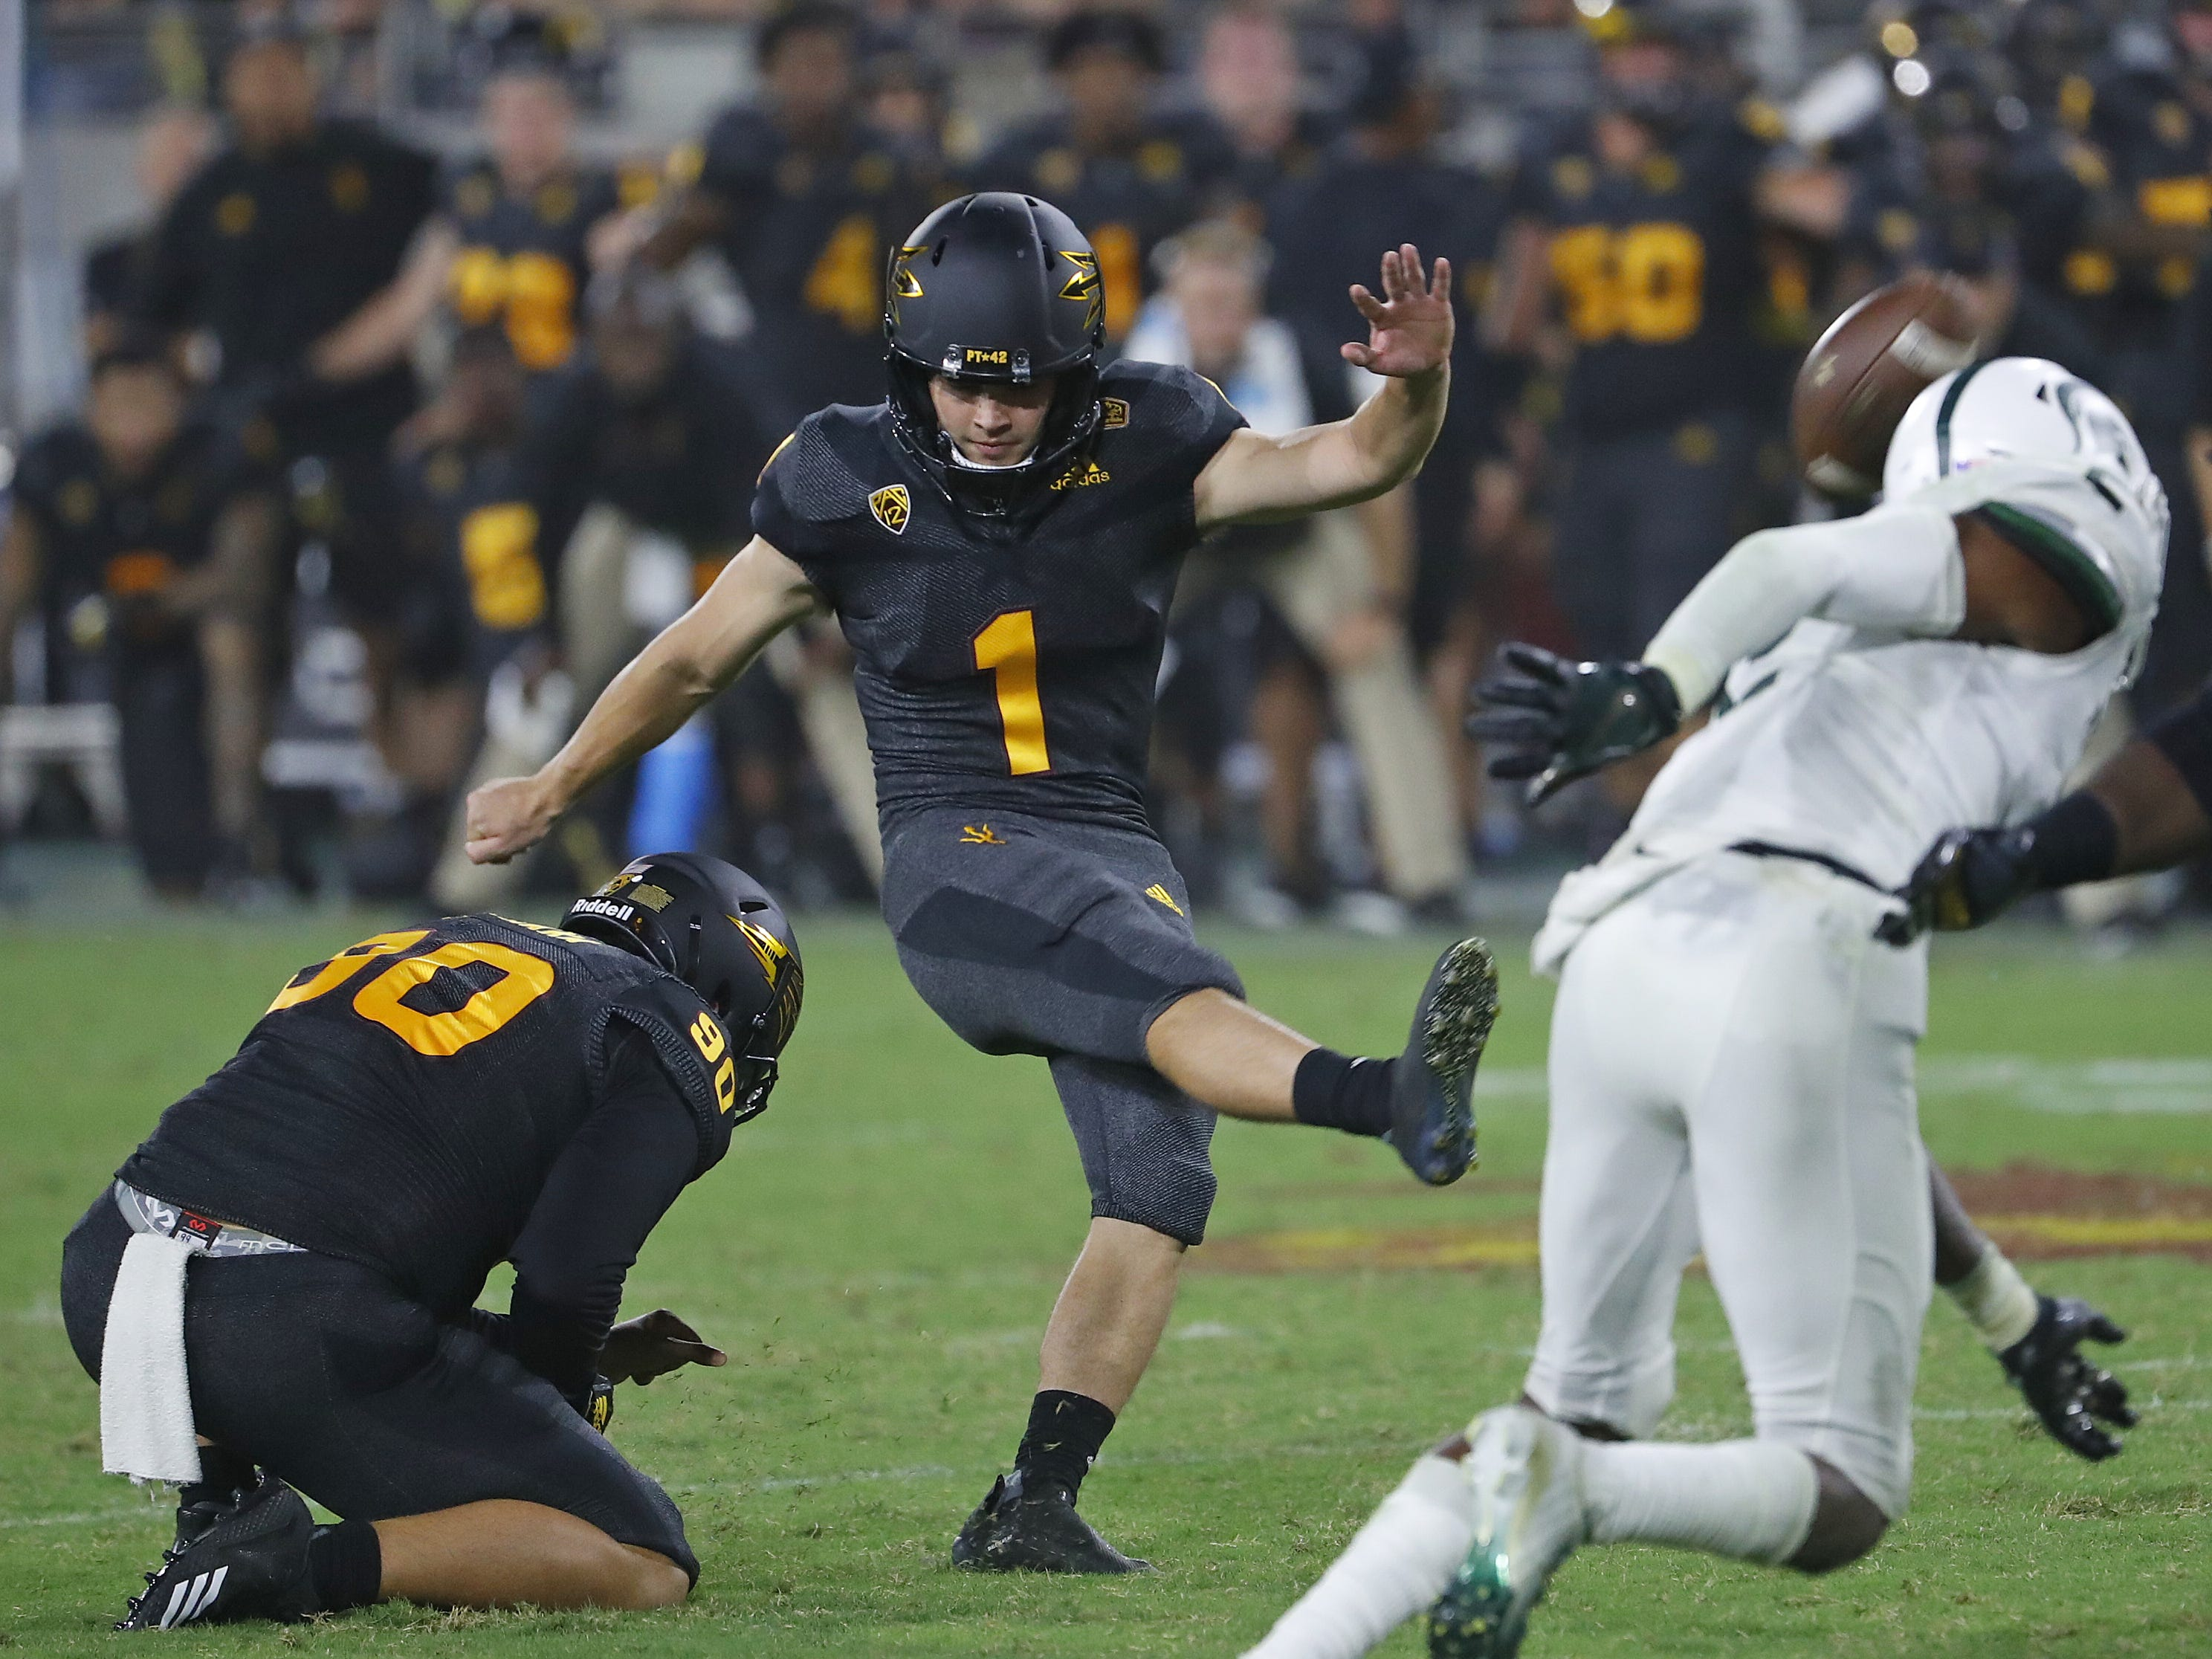 Arizona State Sun Devils place kicker Brandon Ruiz (1) kicks the game-winning field goal as time expires against Michigan State at Sun Devil Stadium in Tempe, Ariz. on Sept. 8, 2018.